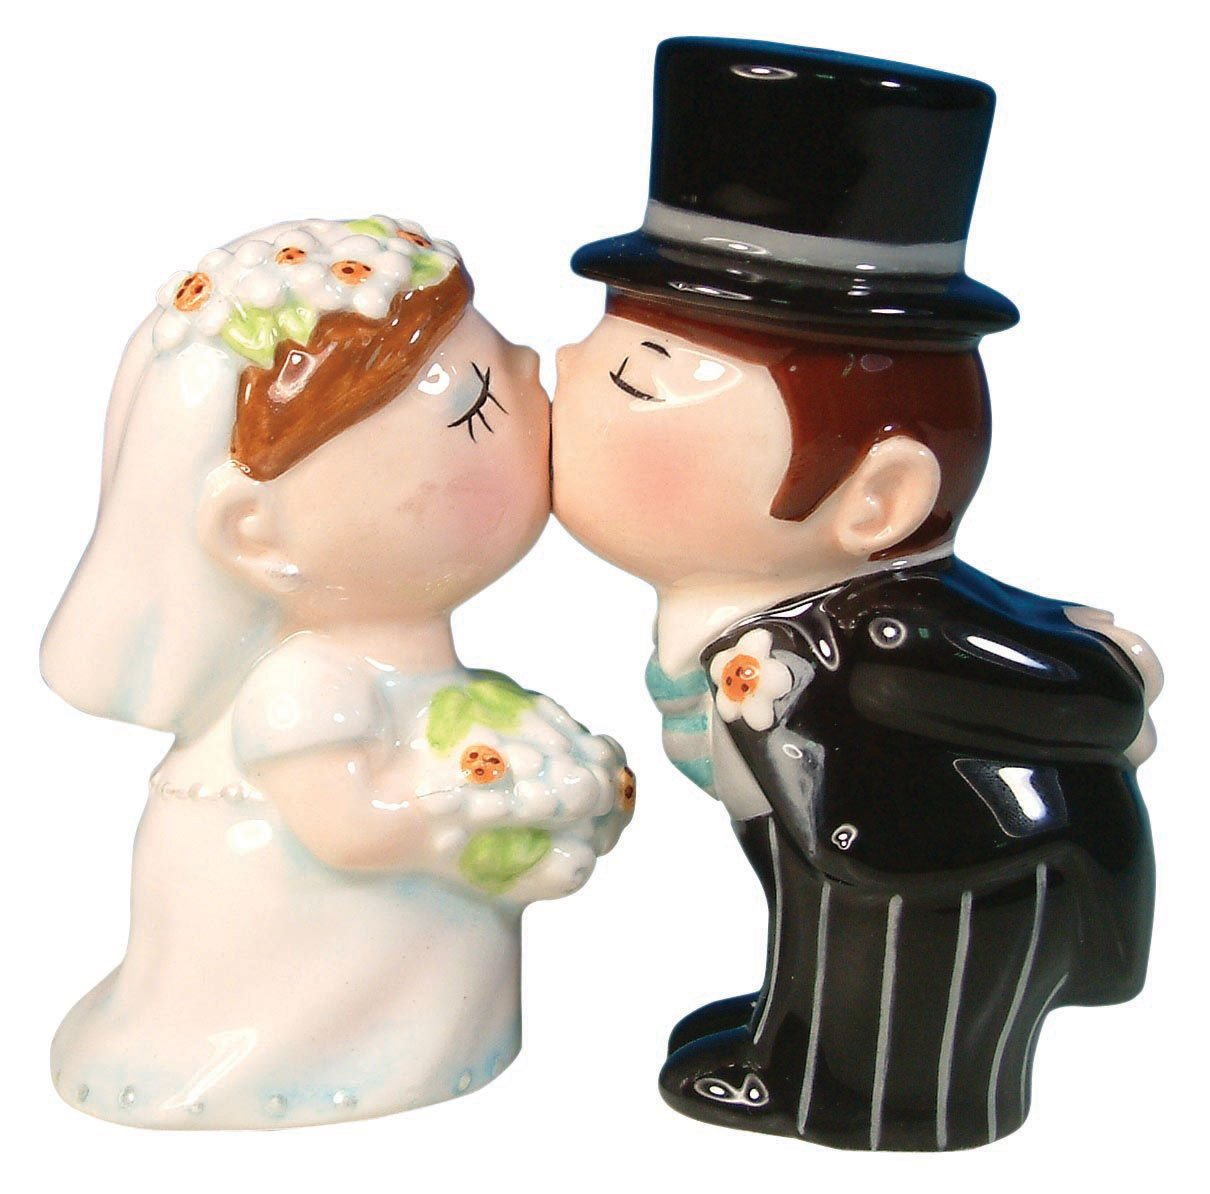 amazoncom westland giftware mwah magnetic bride and groom salt  - amazoncom westland giftware mwah magnetic bride and groom salt and peppershaker set inch kitchen  dining